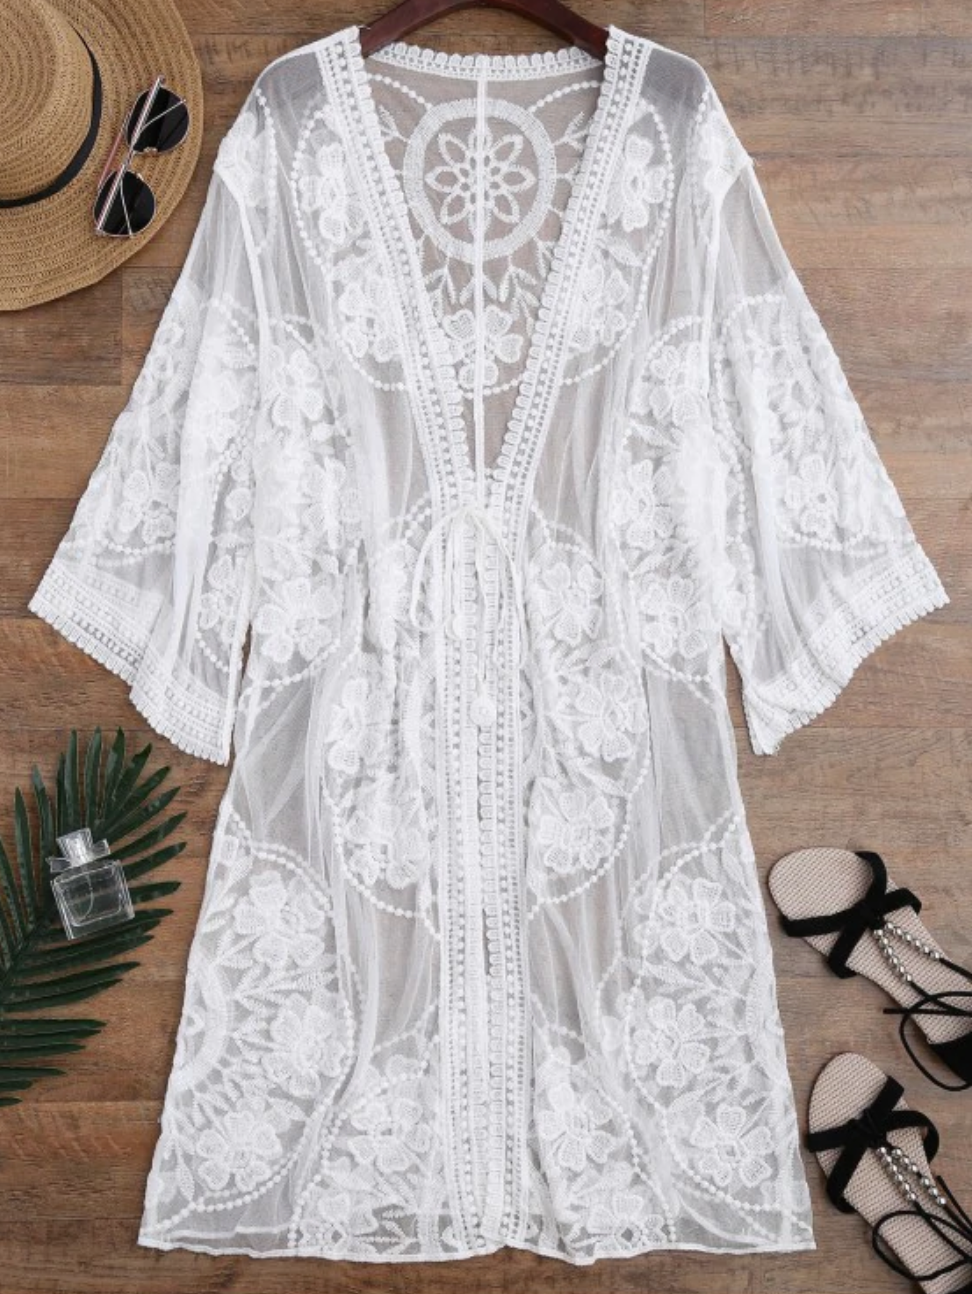 Sheer Lace Tie Front Kimono Beach Cover Up